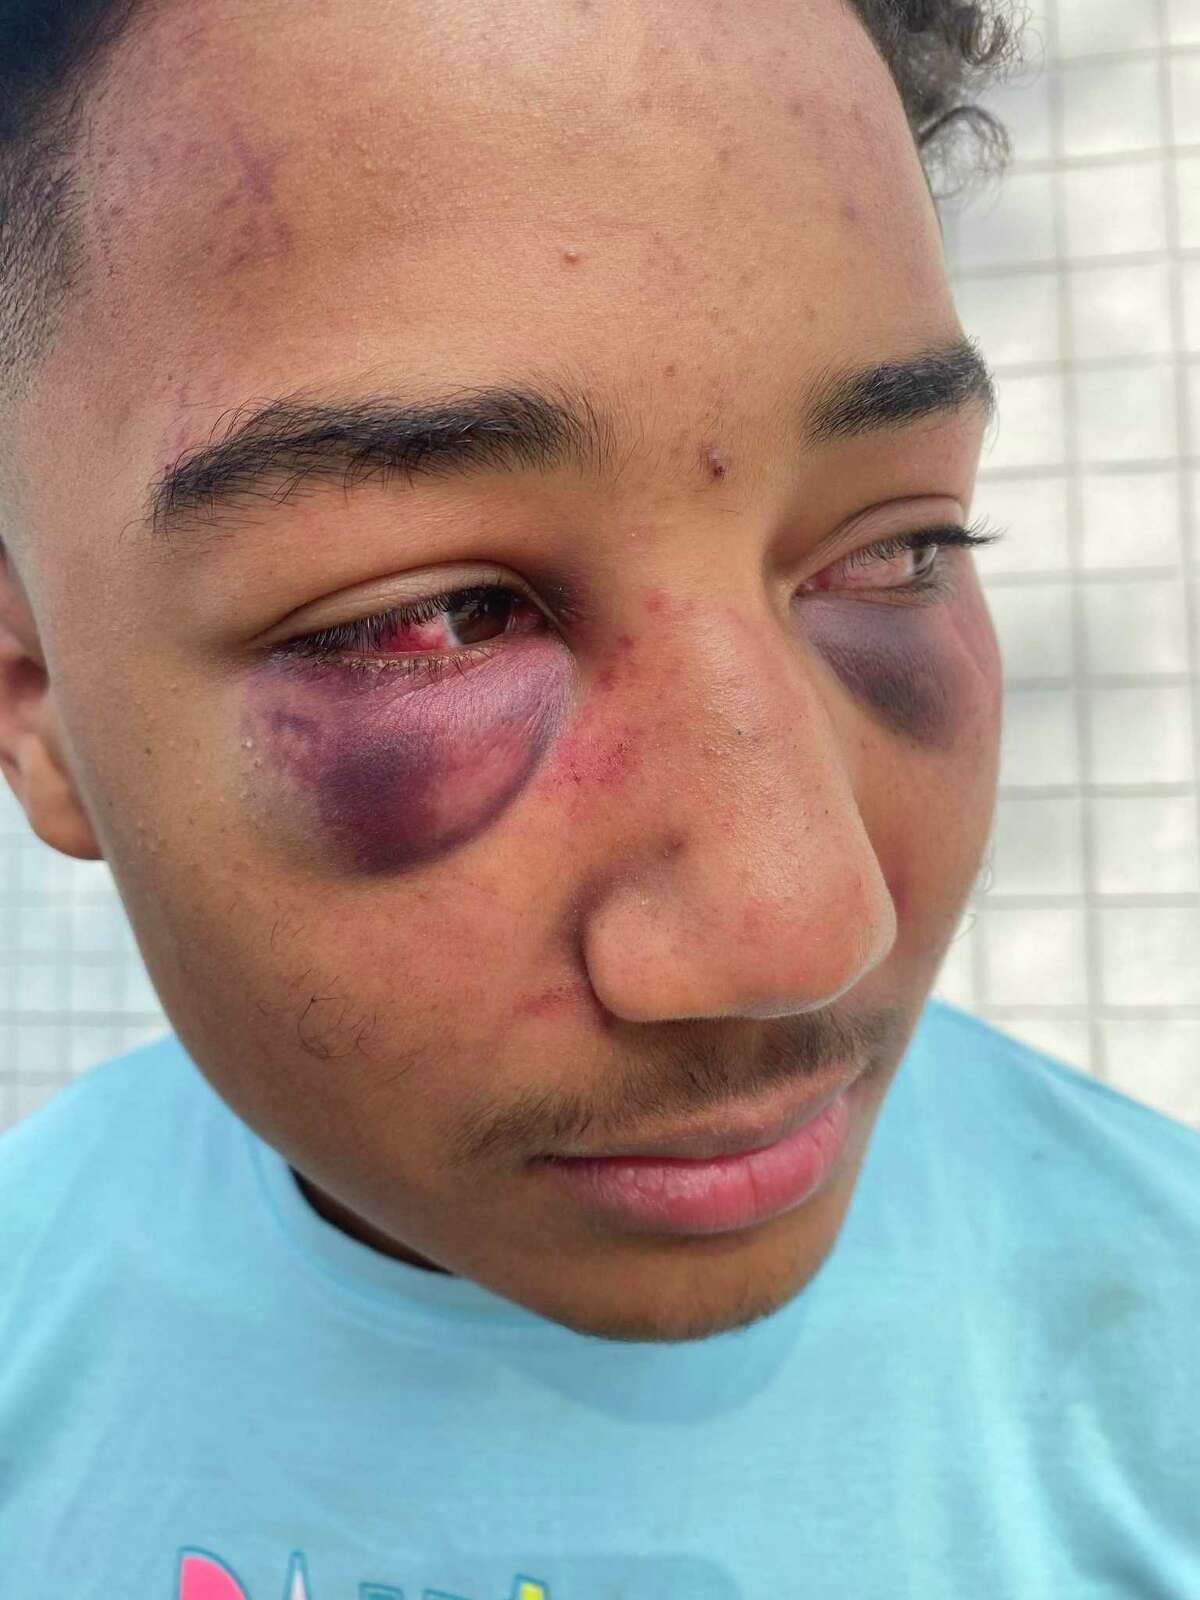 Devin Carter with facial bruises after four Stockton police officers beat him during a traffic stop.